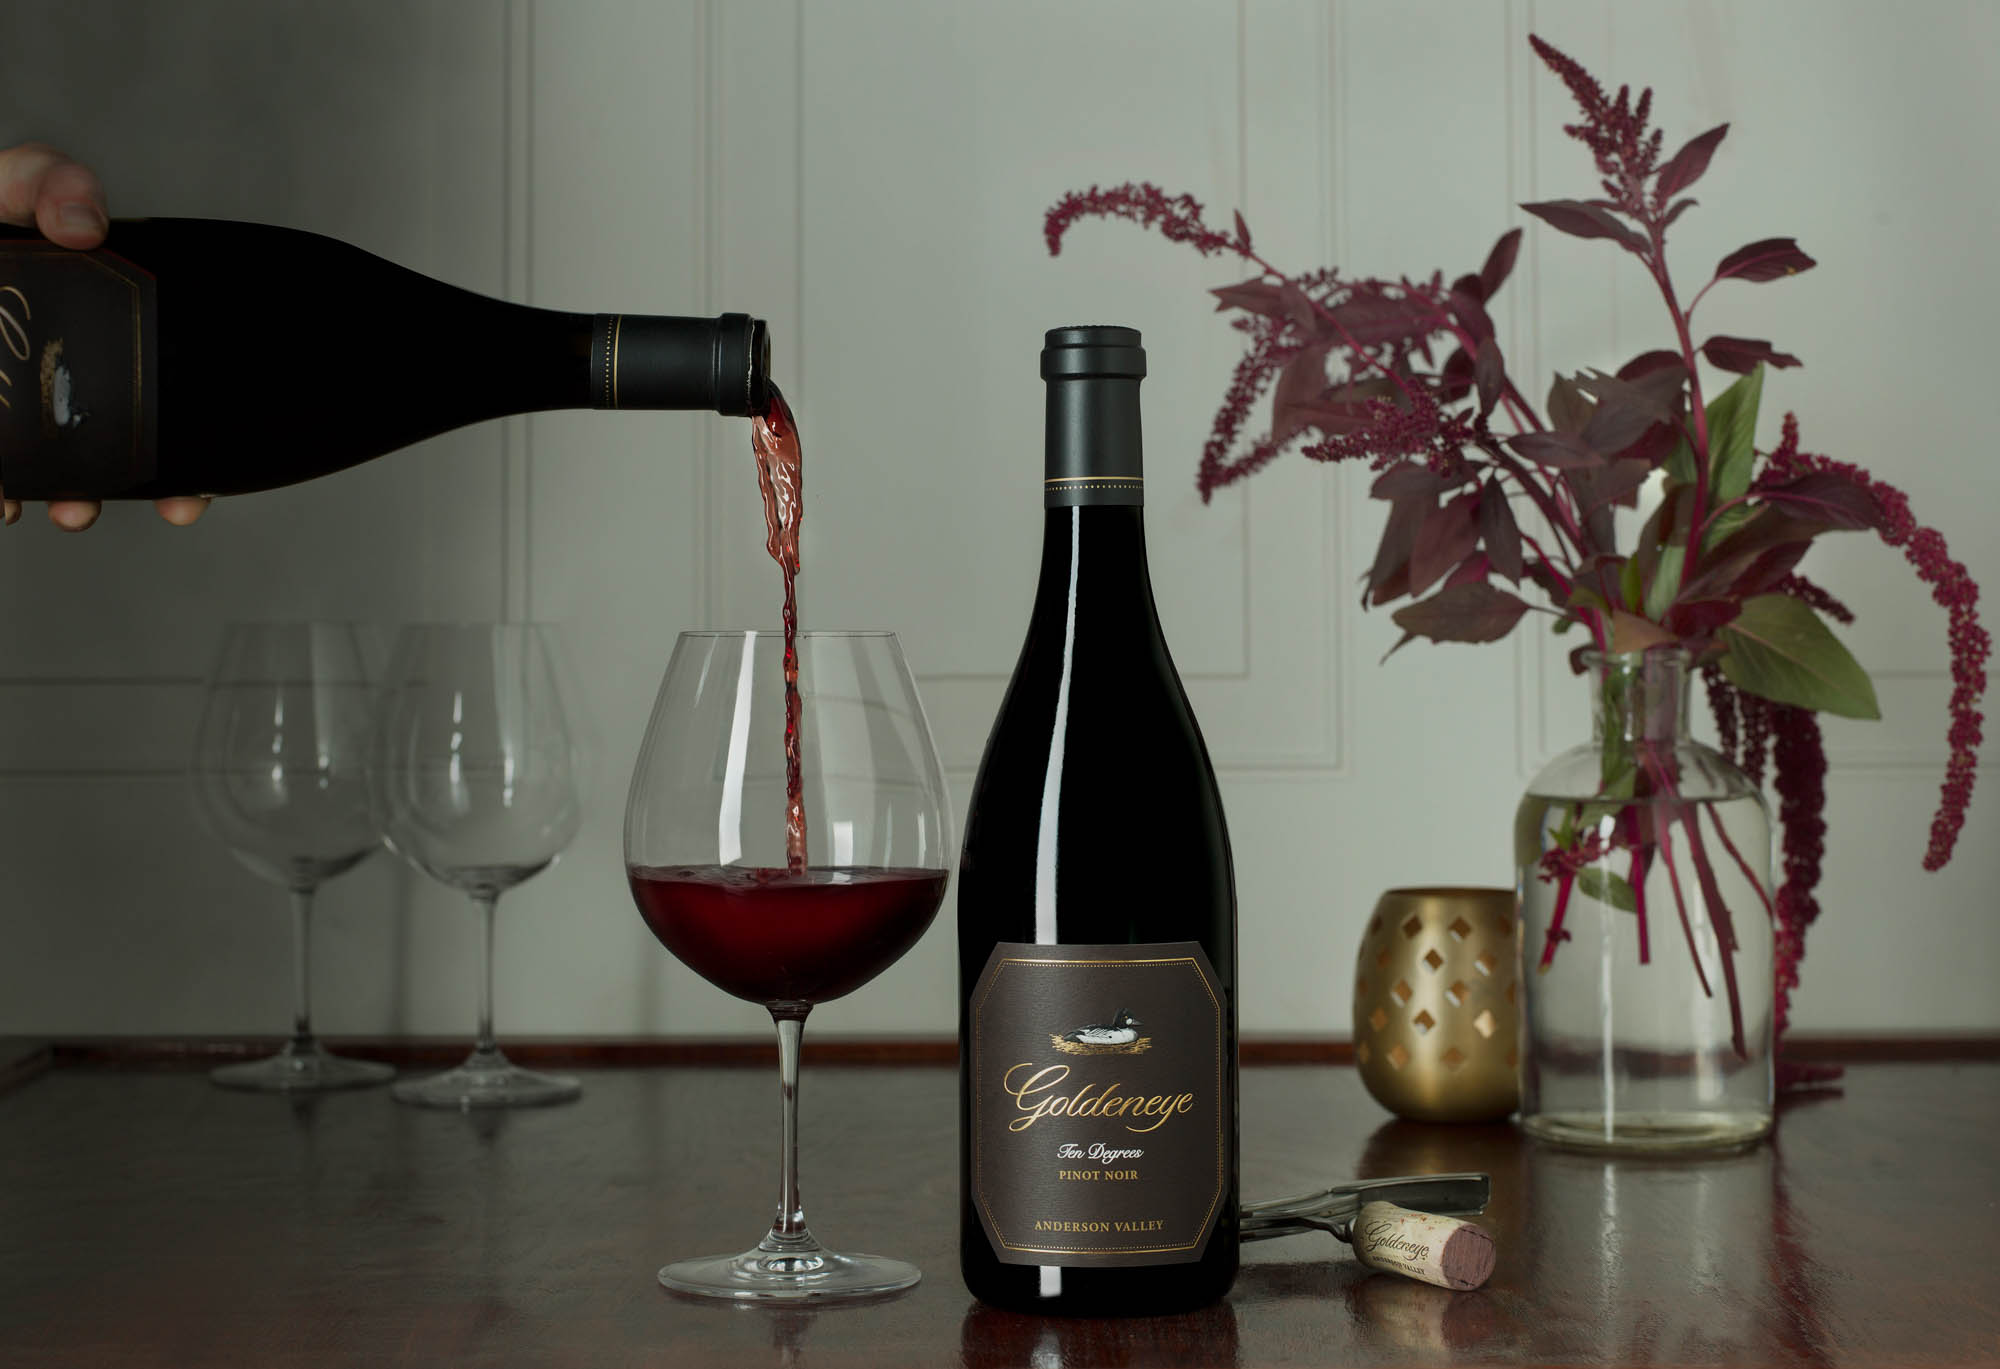 Wine Collector Wines| Goldeneye Ten Degrees Pinot Noir